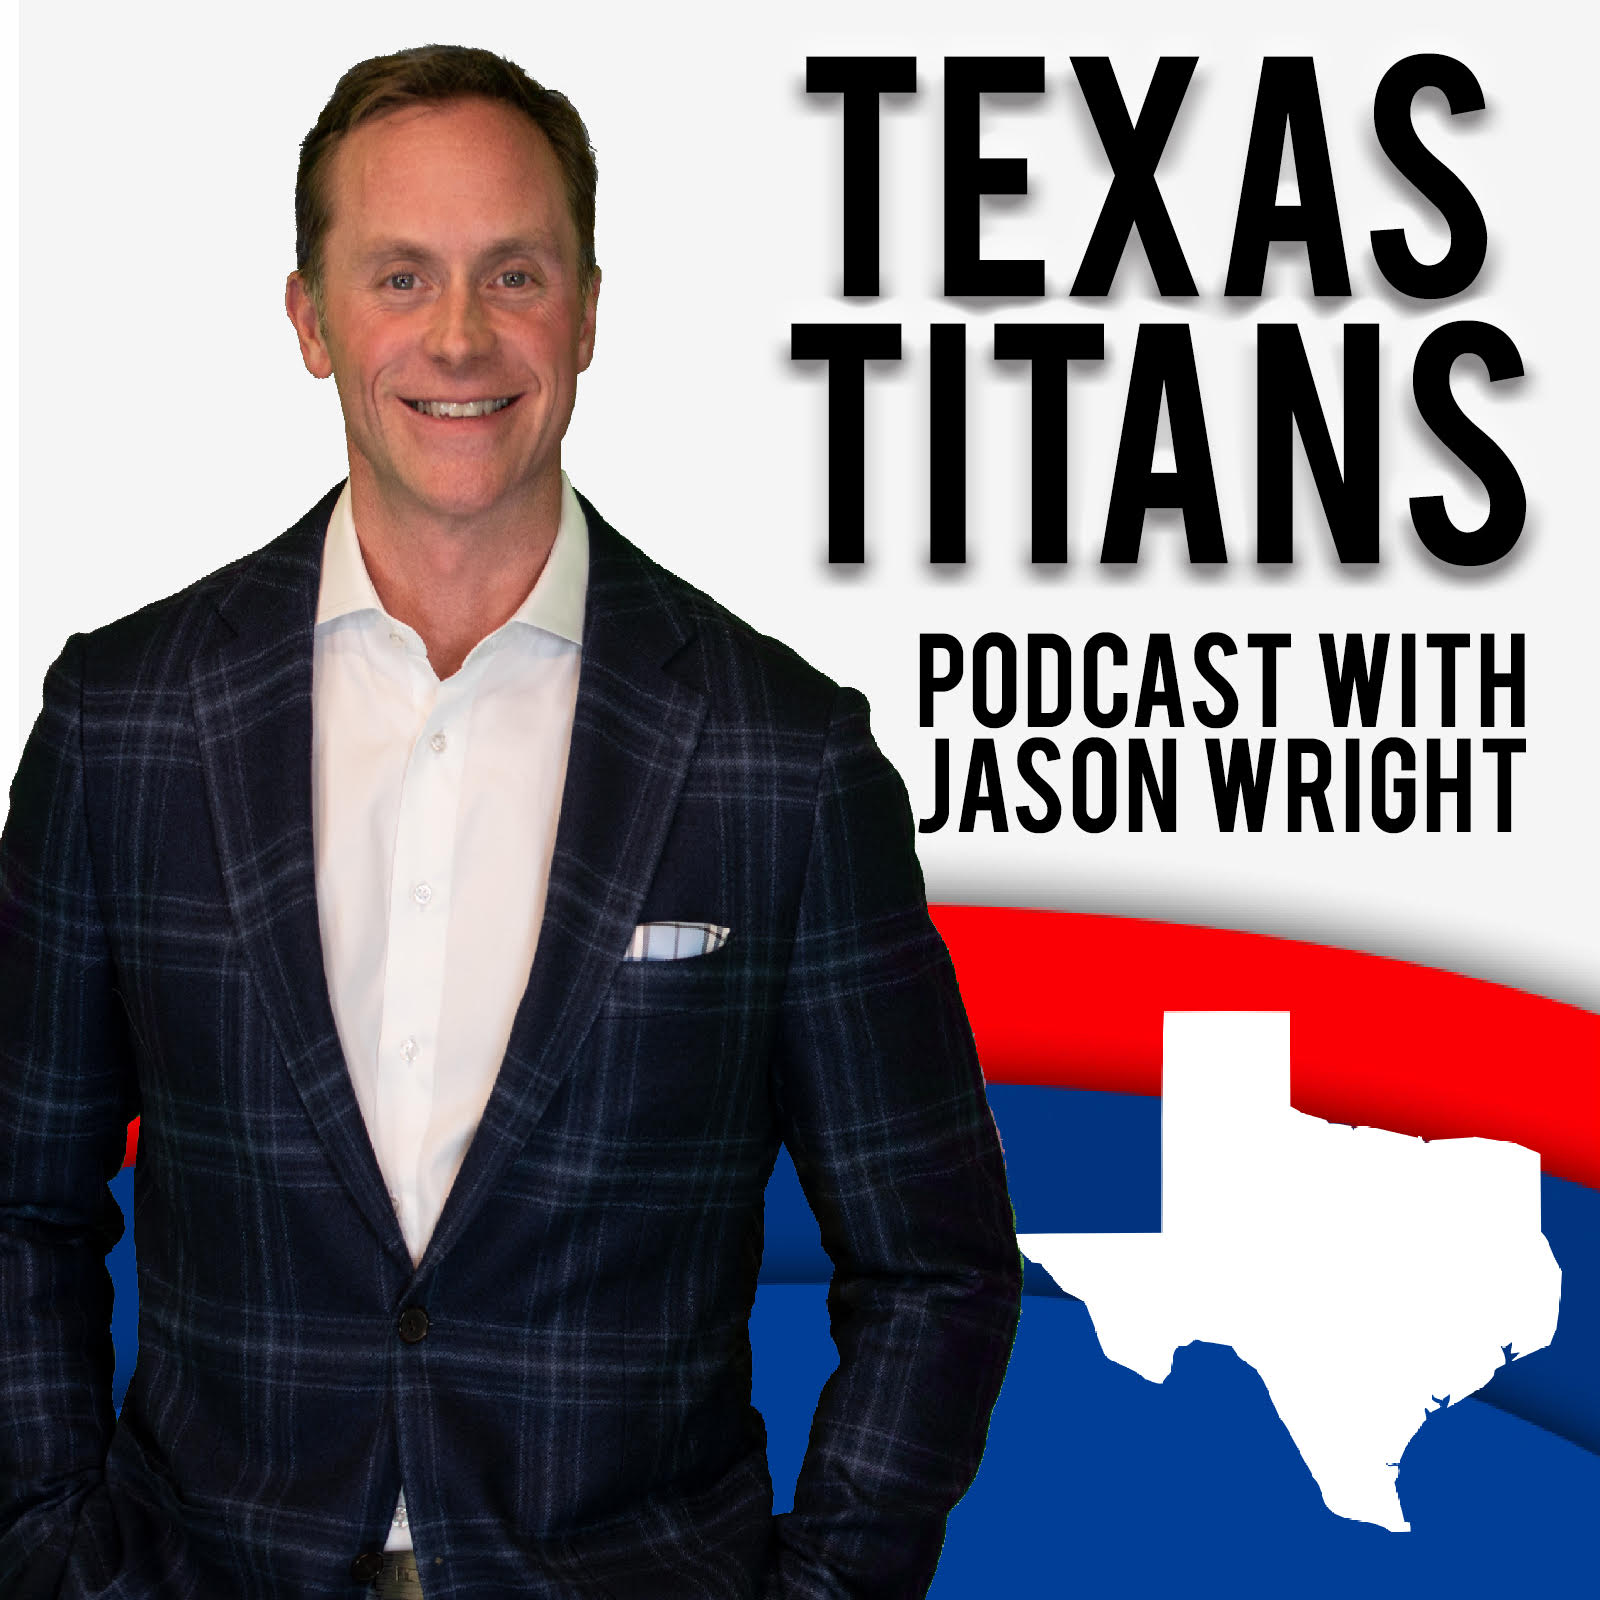 Texas Titans Podcast